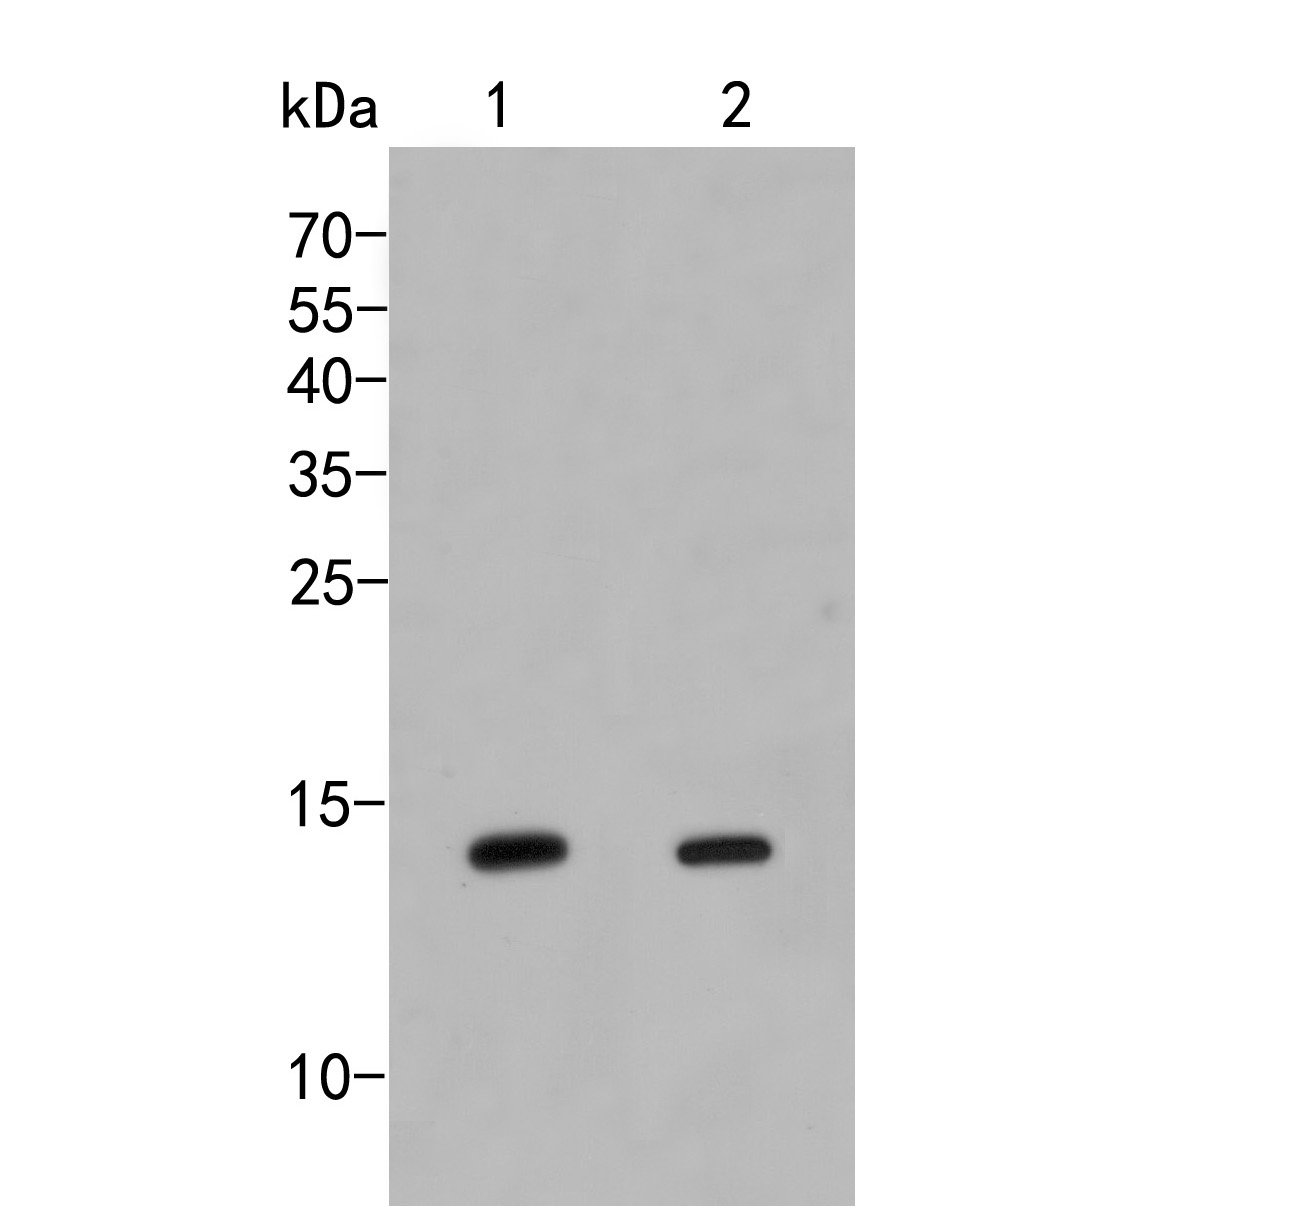 Western blot analysis of IFITM1 on different lysates. Proteins were transferred to a PVDF membrane and blocked with 5% BSA in PBS for 1 hour at room temperature. The primary antibody (ER2001-46, 1/500) was used in 5% BSA at room temperature for 2 hours. Goat Anti-Rabbit IgG - HRP Secondary Antibody (HA1001) at 1:5,000 dilution was used for 1 hour at room temperature.<br />  Positive control:<br />  Lane 1: A172 cell lysate<br />  Lane 2: K562 cell lysate